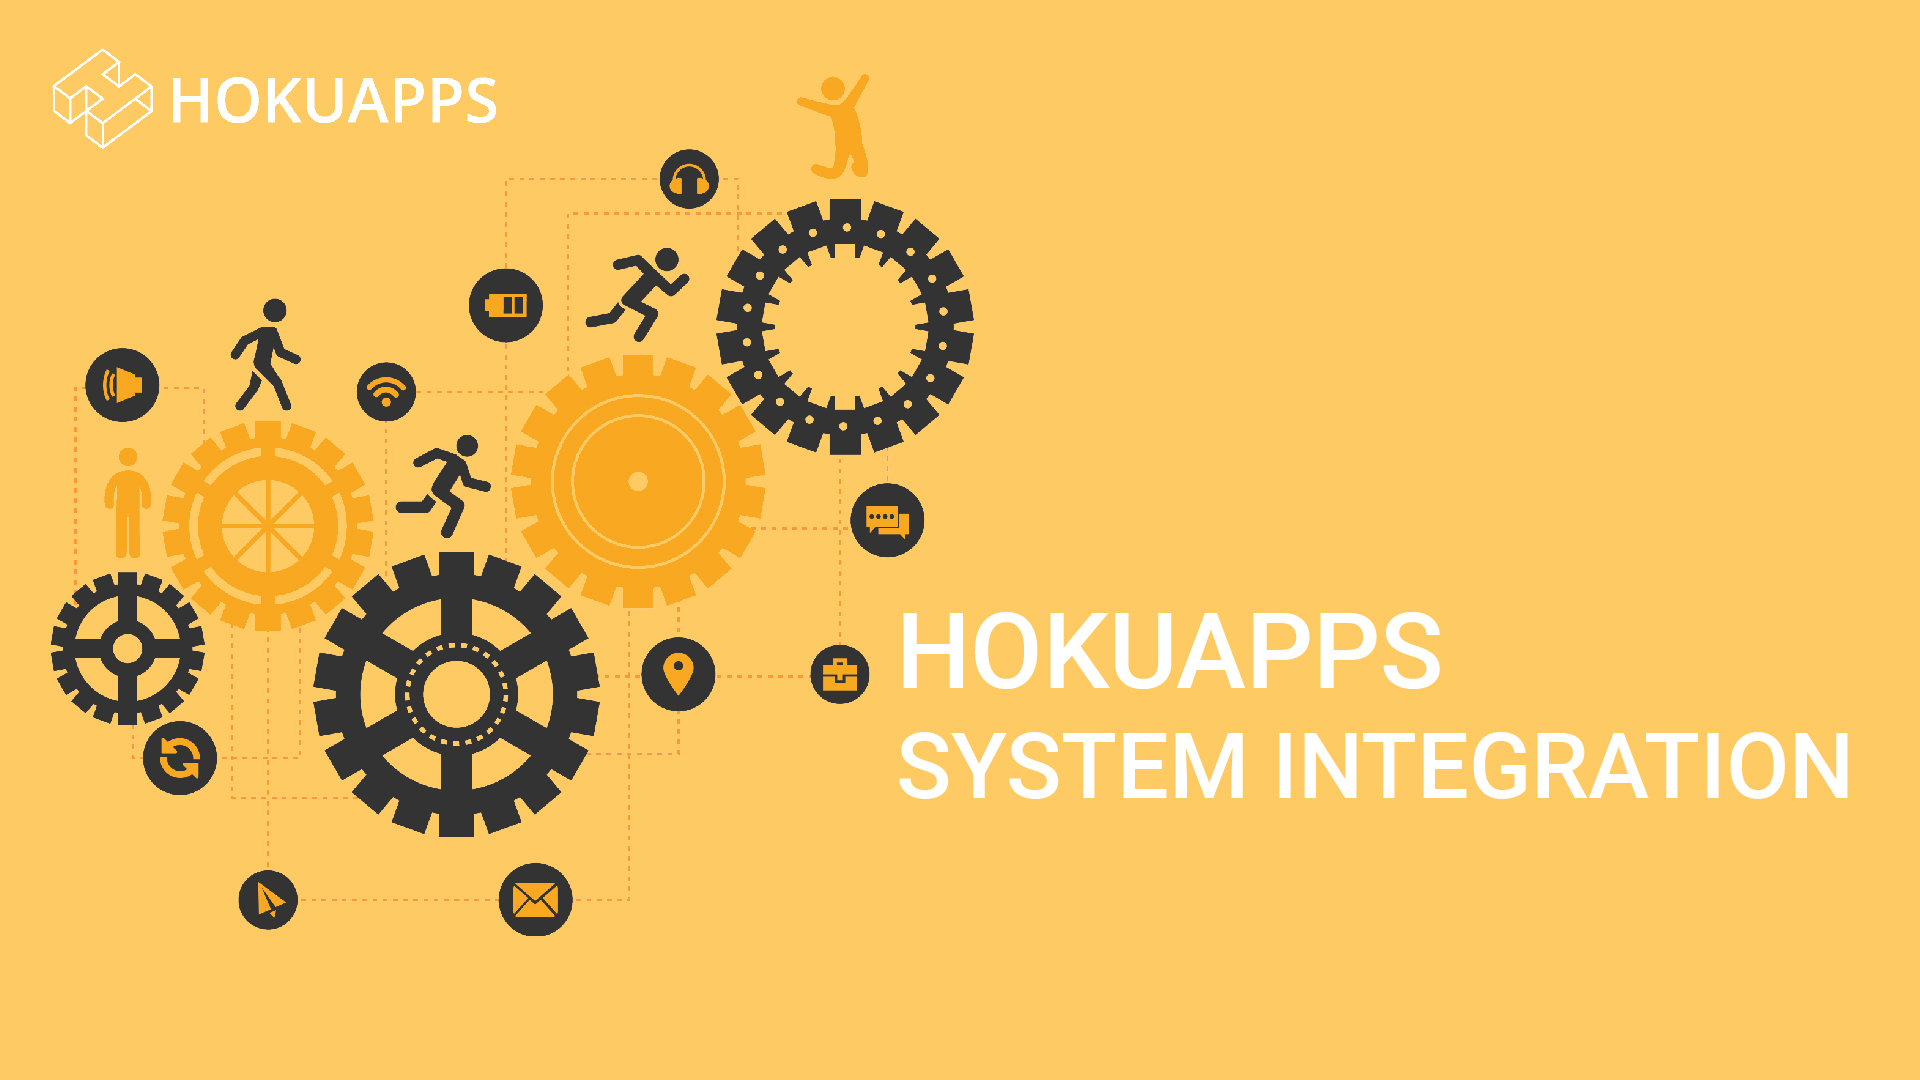 Seamlessly Integrate Applications with the HokuApps Platform